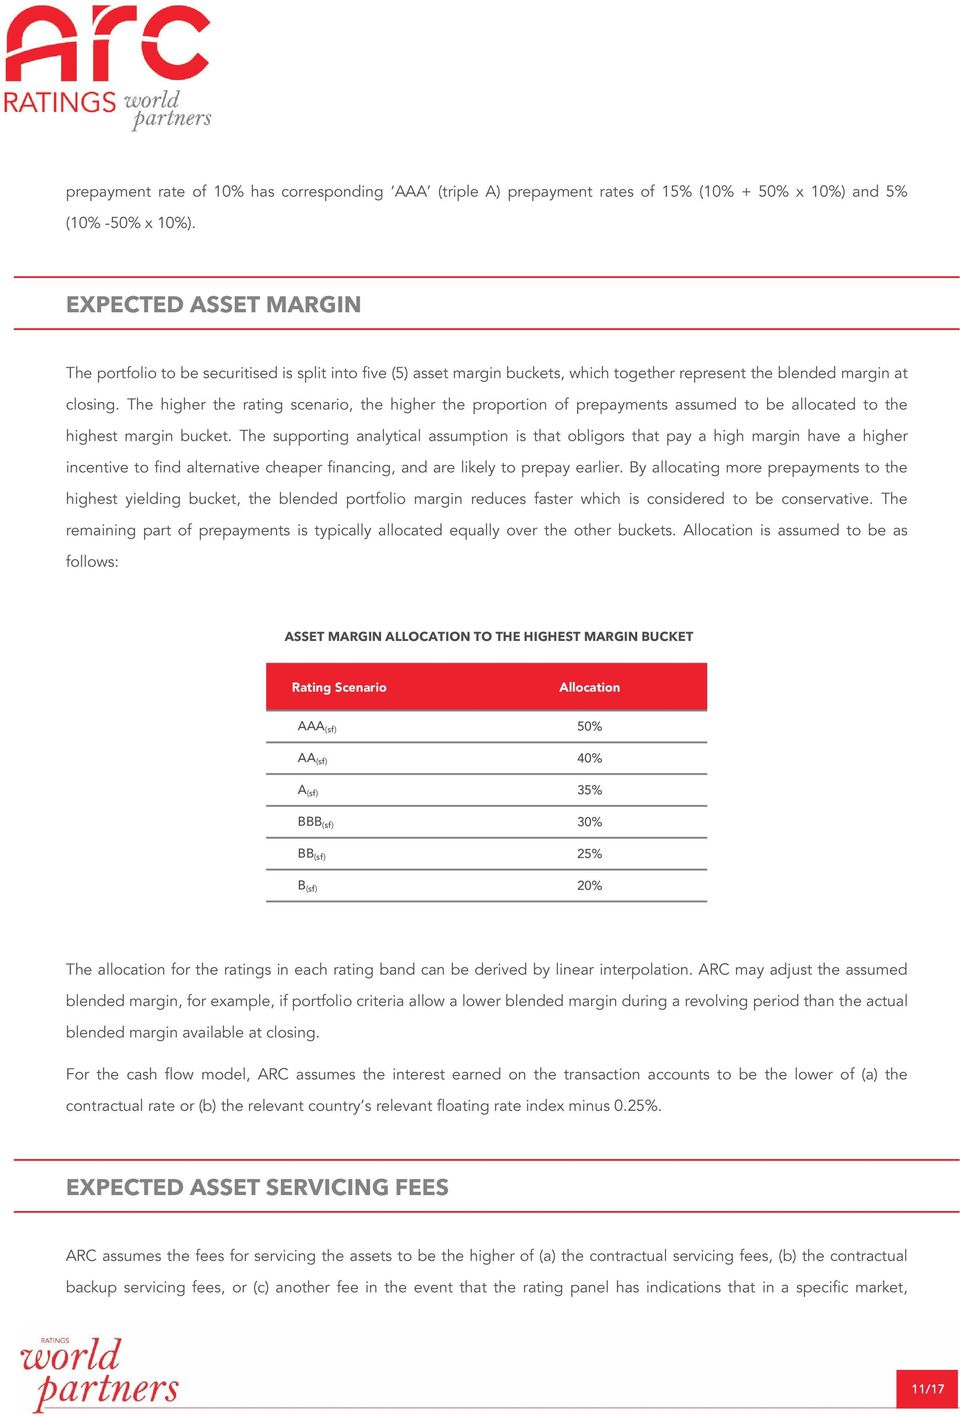 The higher the rating scenario, the higher the proportion of prepayments assumed to be allocated to the highest margin bucket.